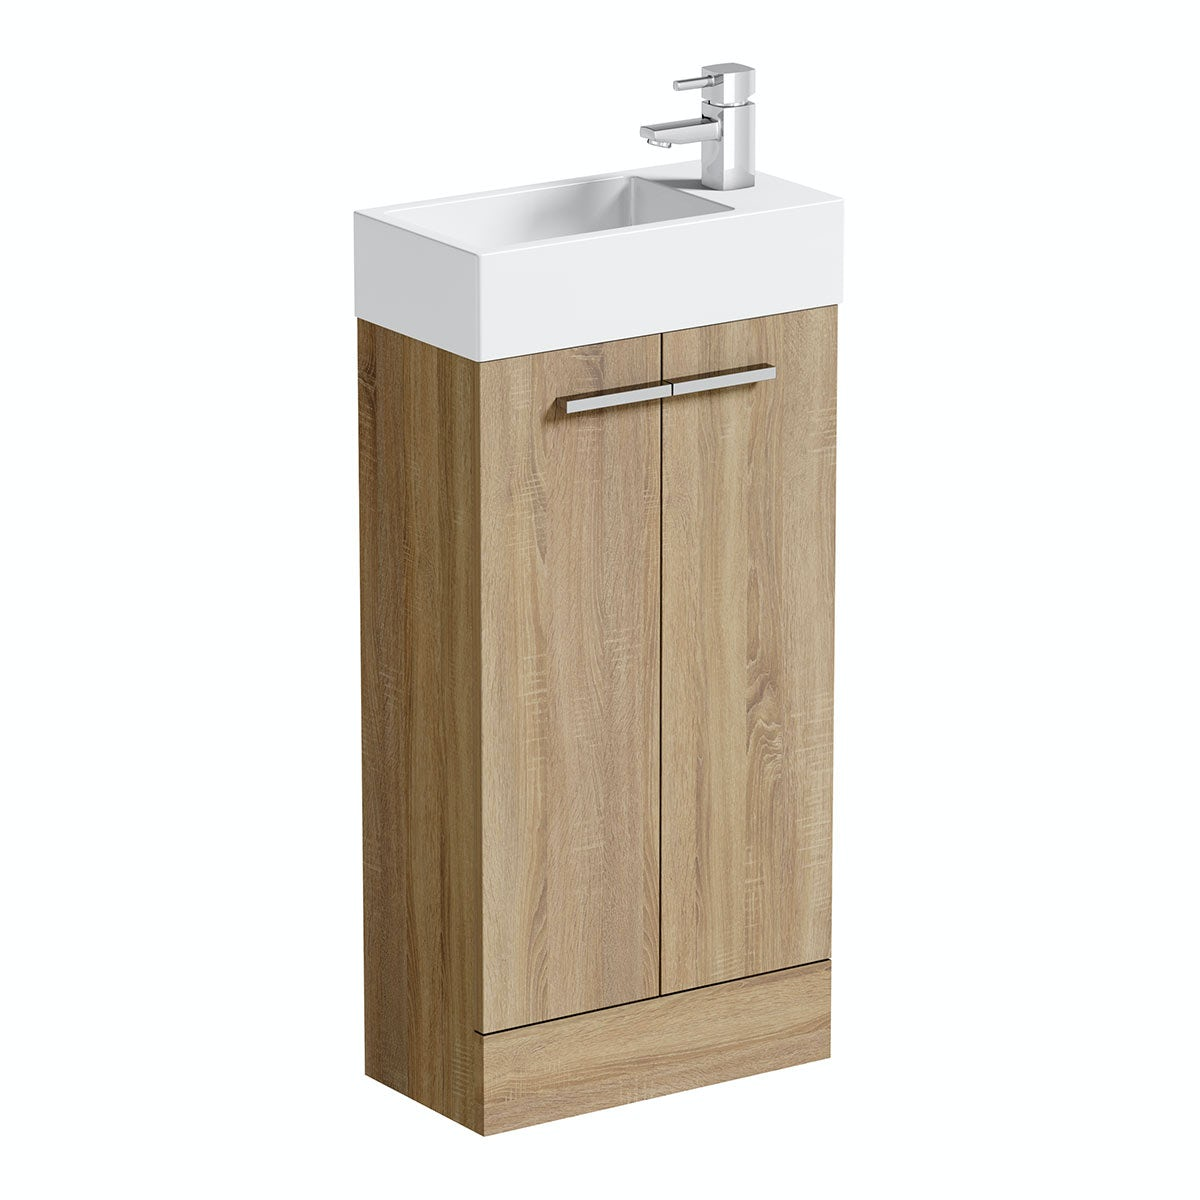 Orchard Oak cloakroom unit with basin 410mm